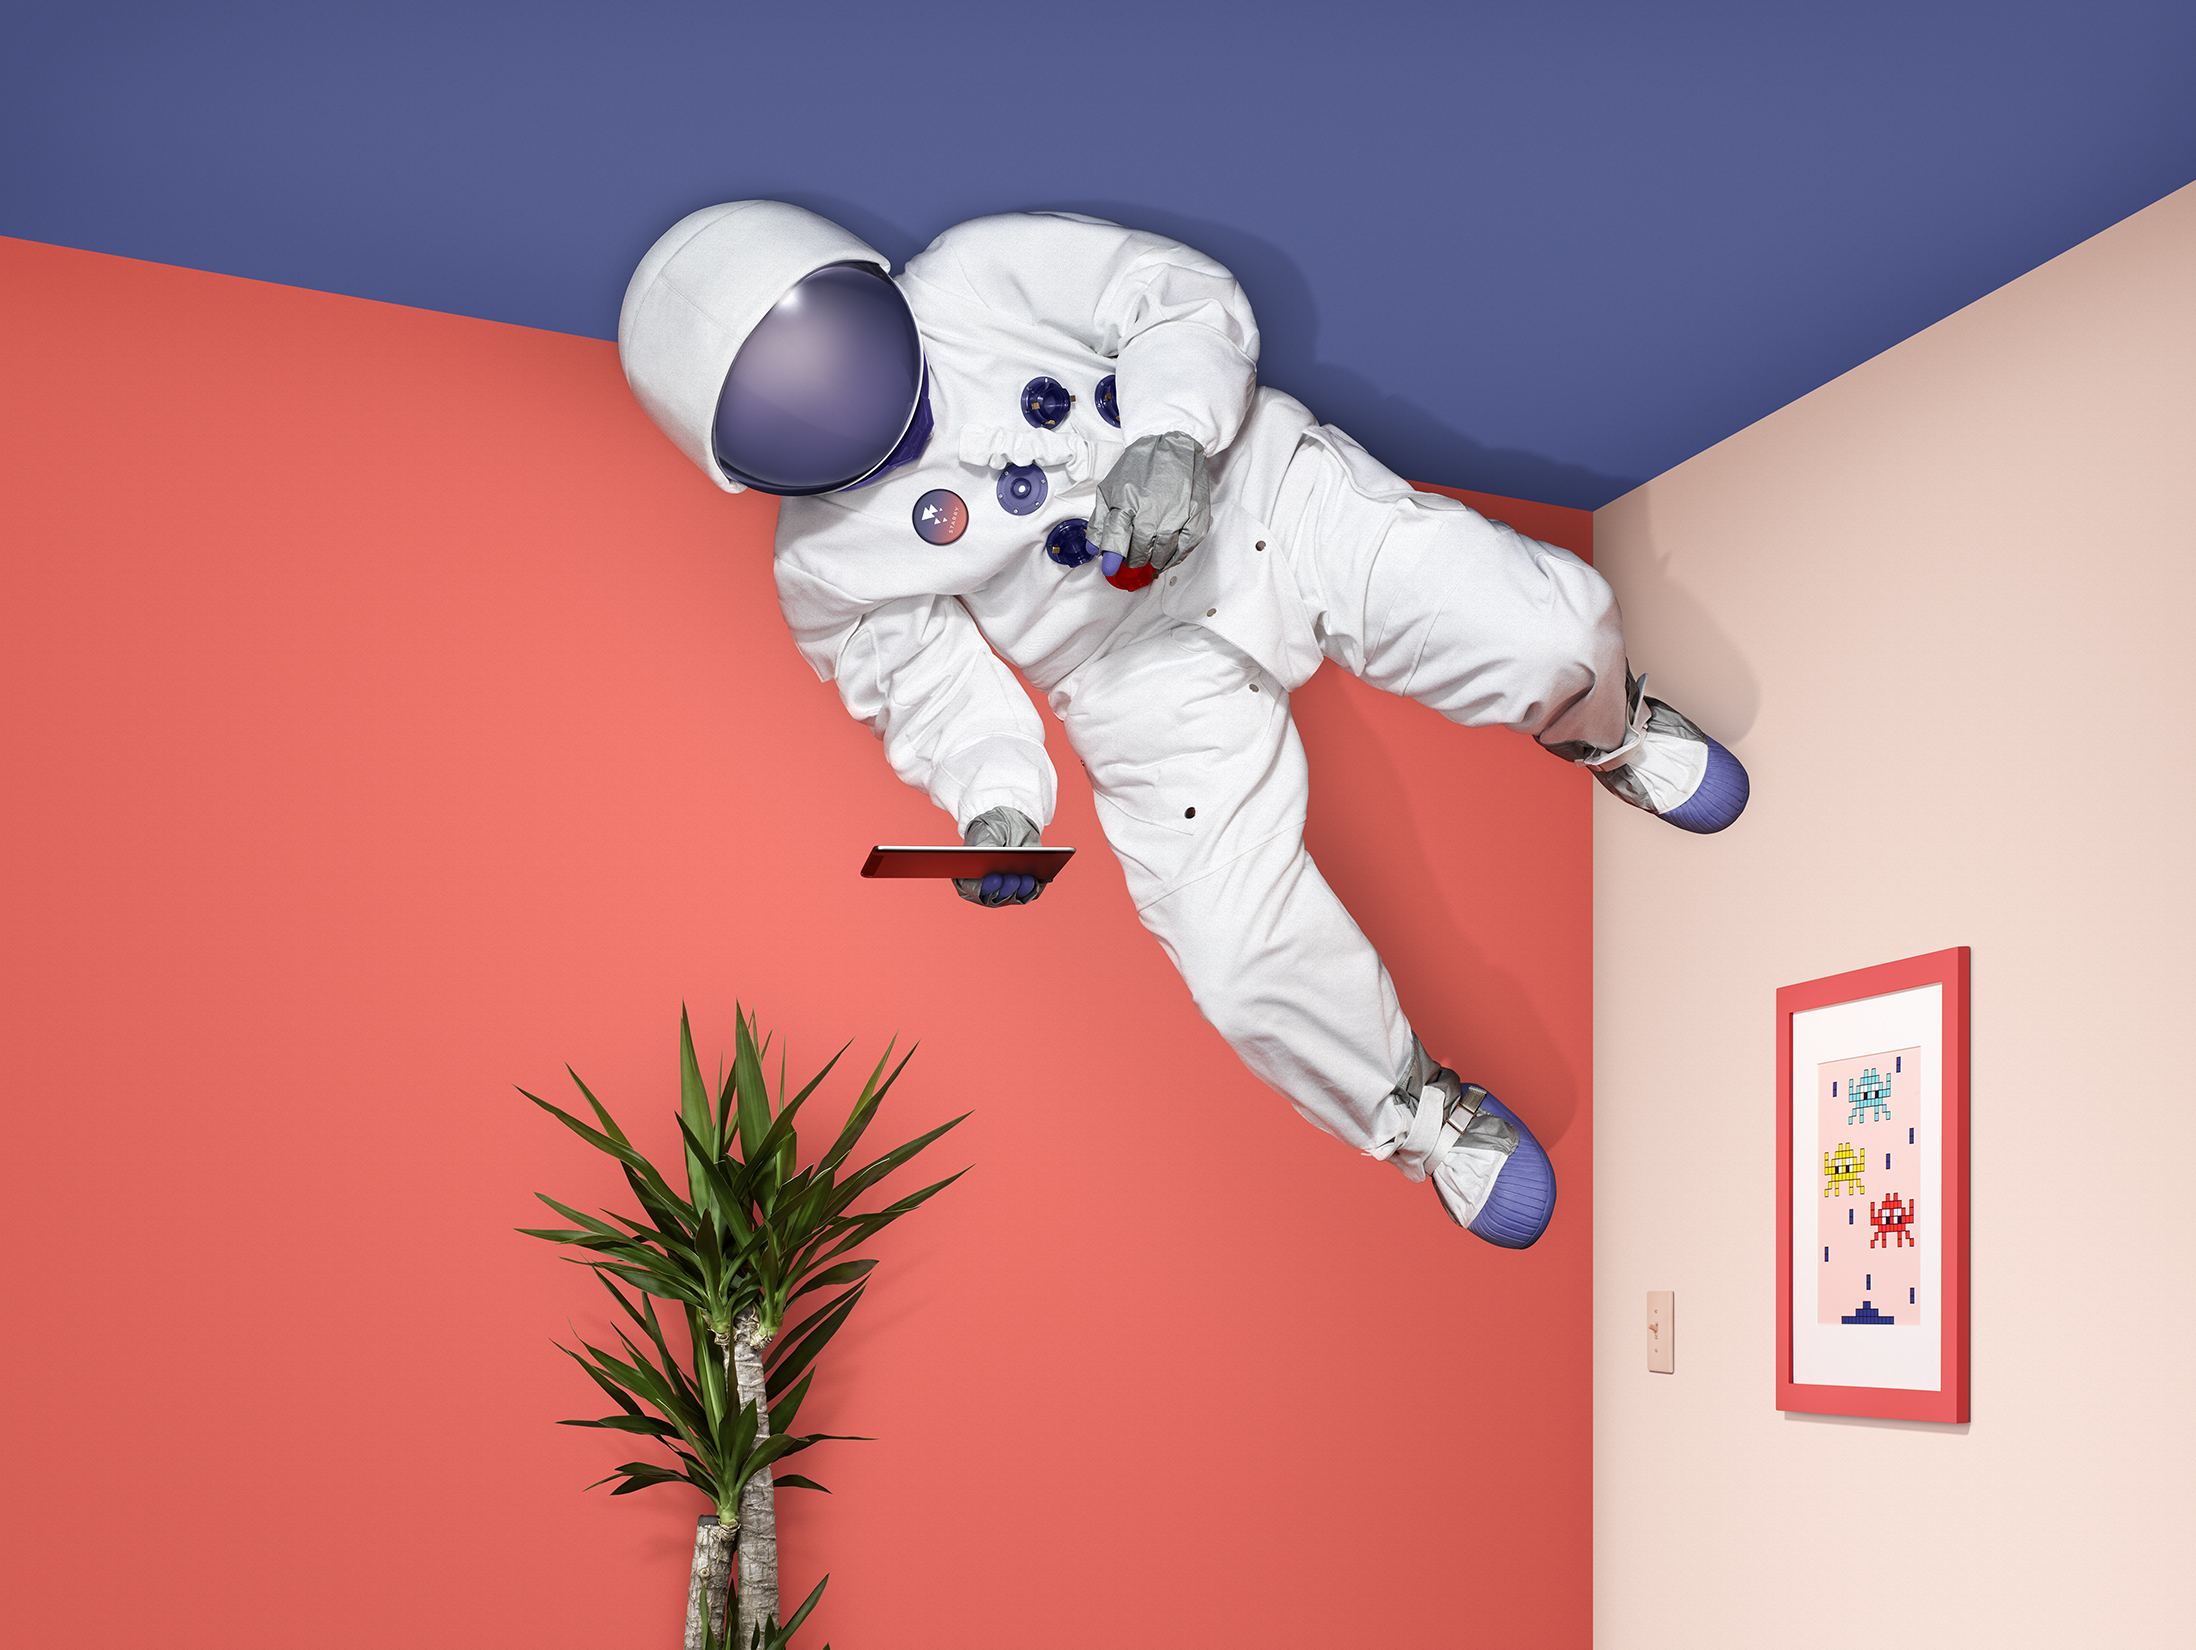 1817_Starry_Astronaut_Flat_Final_Web